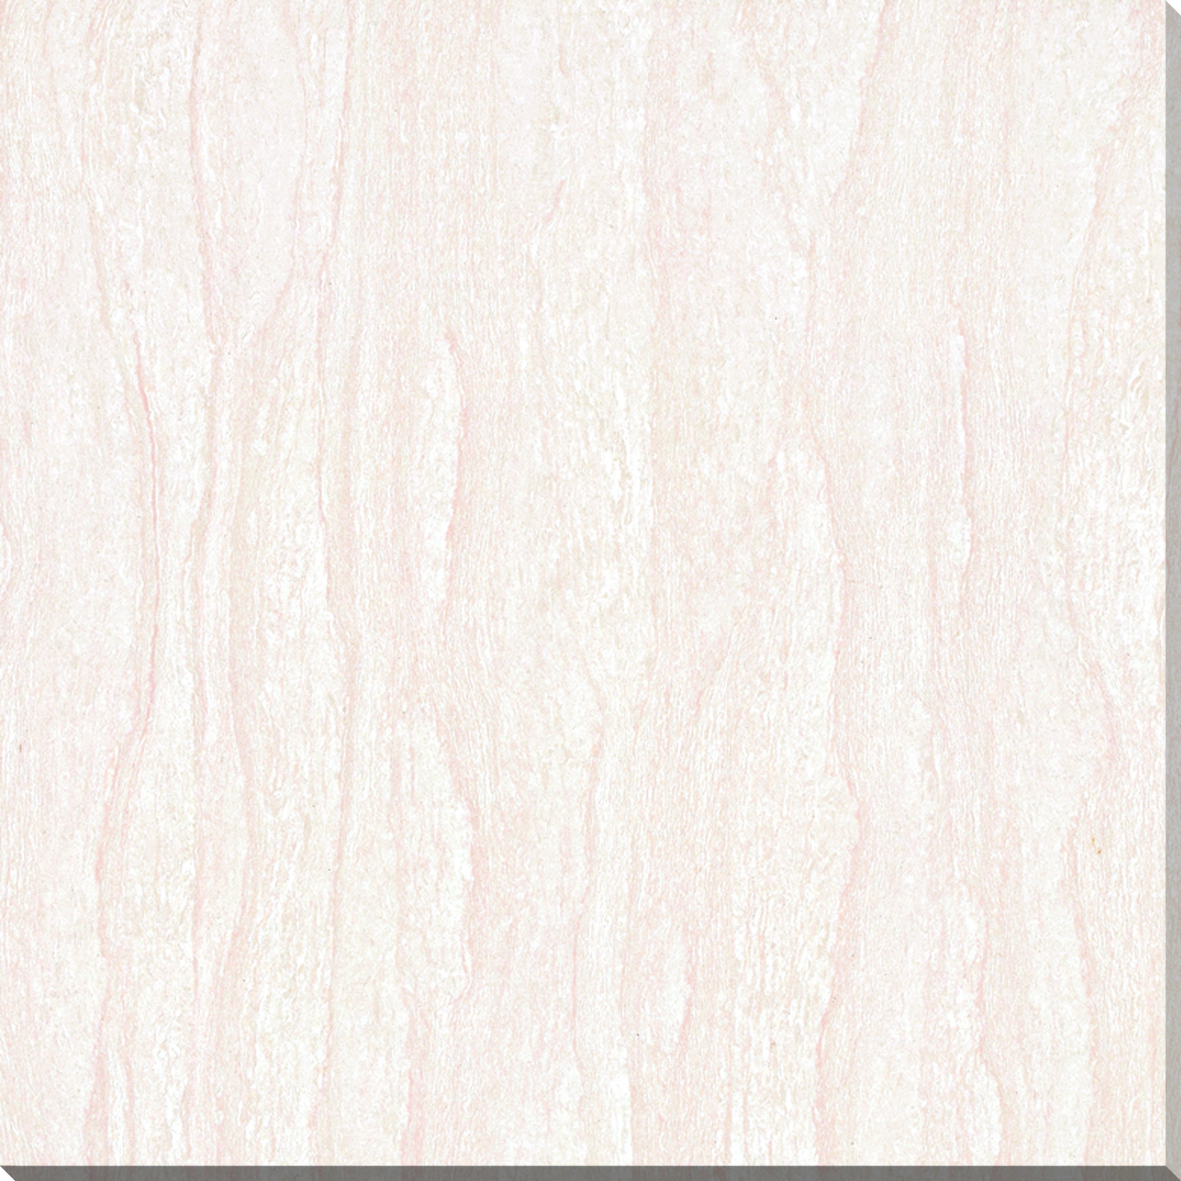 High Glsossy Polished Porcelain Tile Ranibow Jade Serie